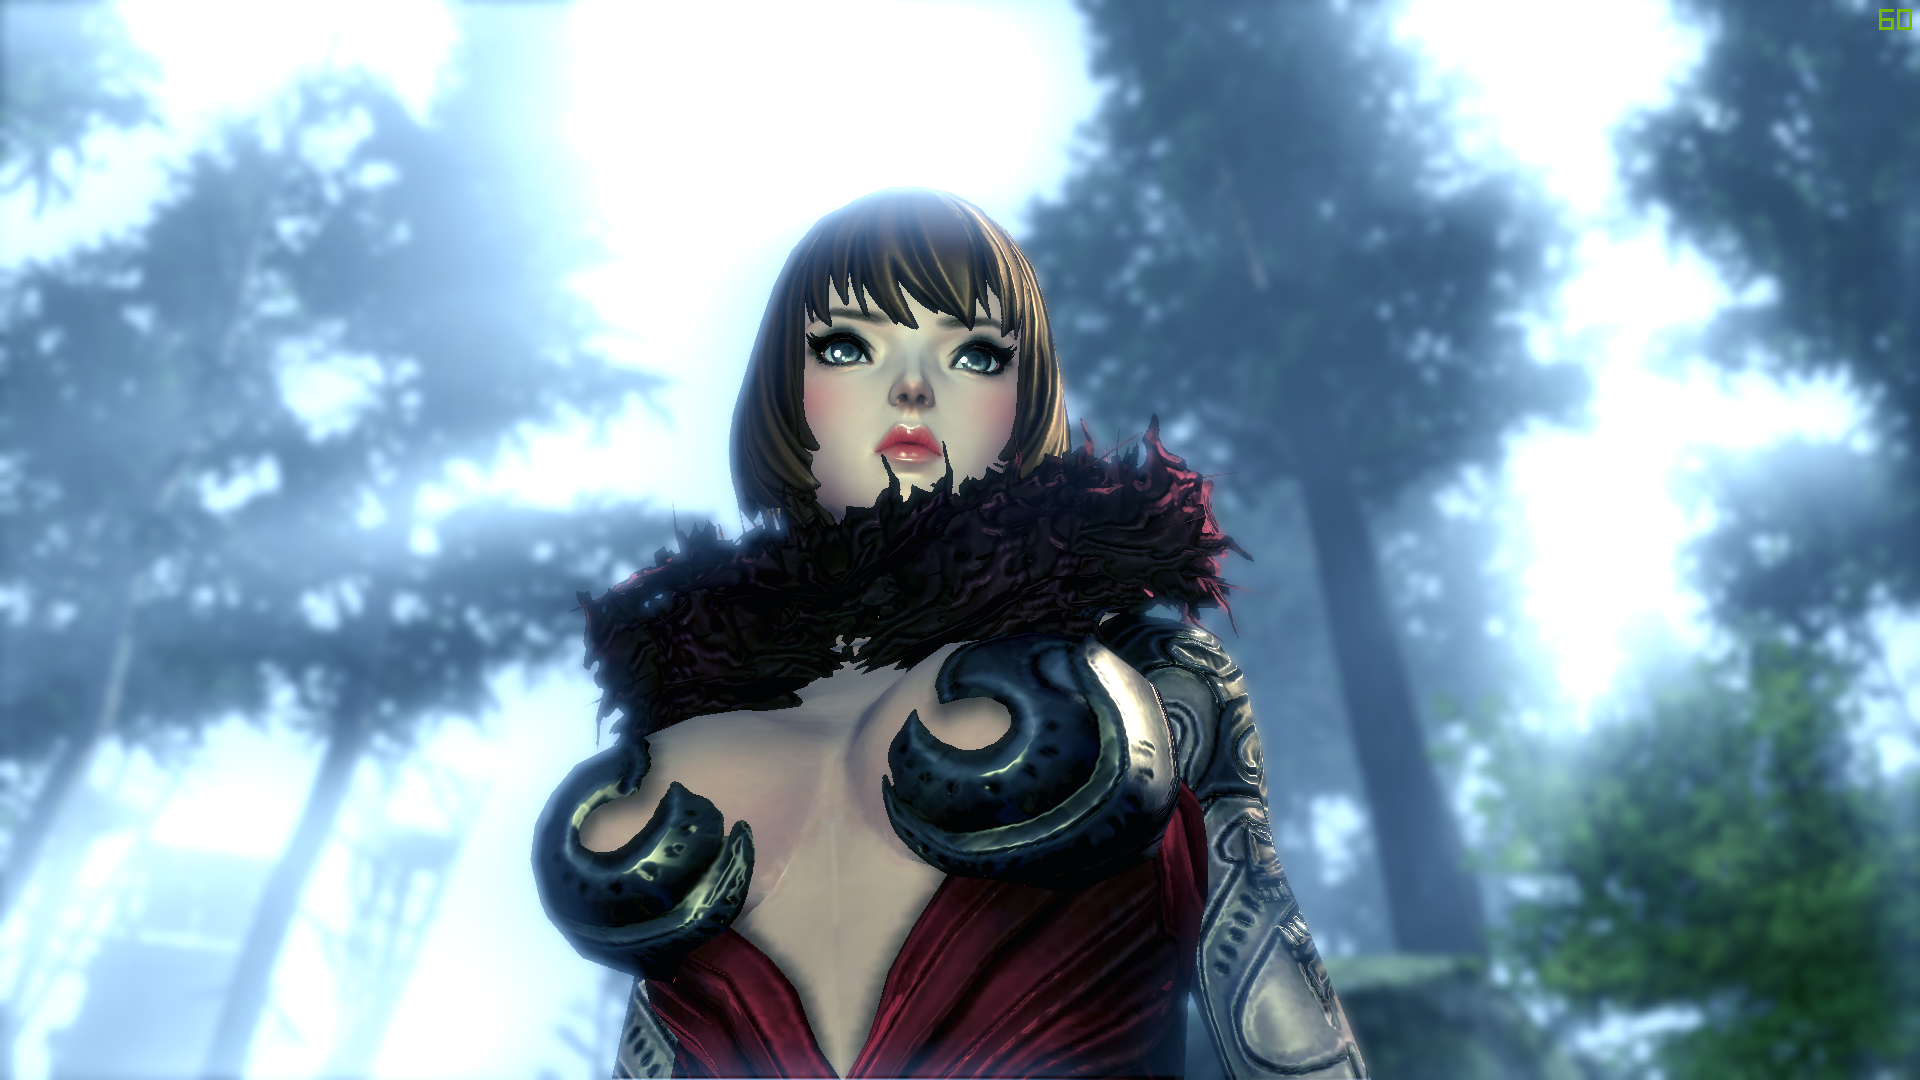 screenshot__59__by_delsabre-da3s05j.png